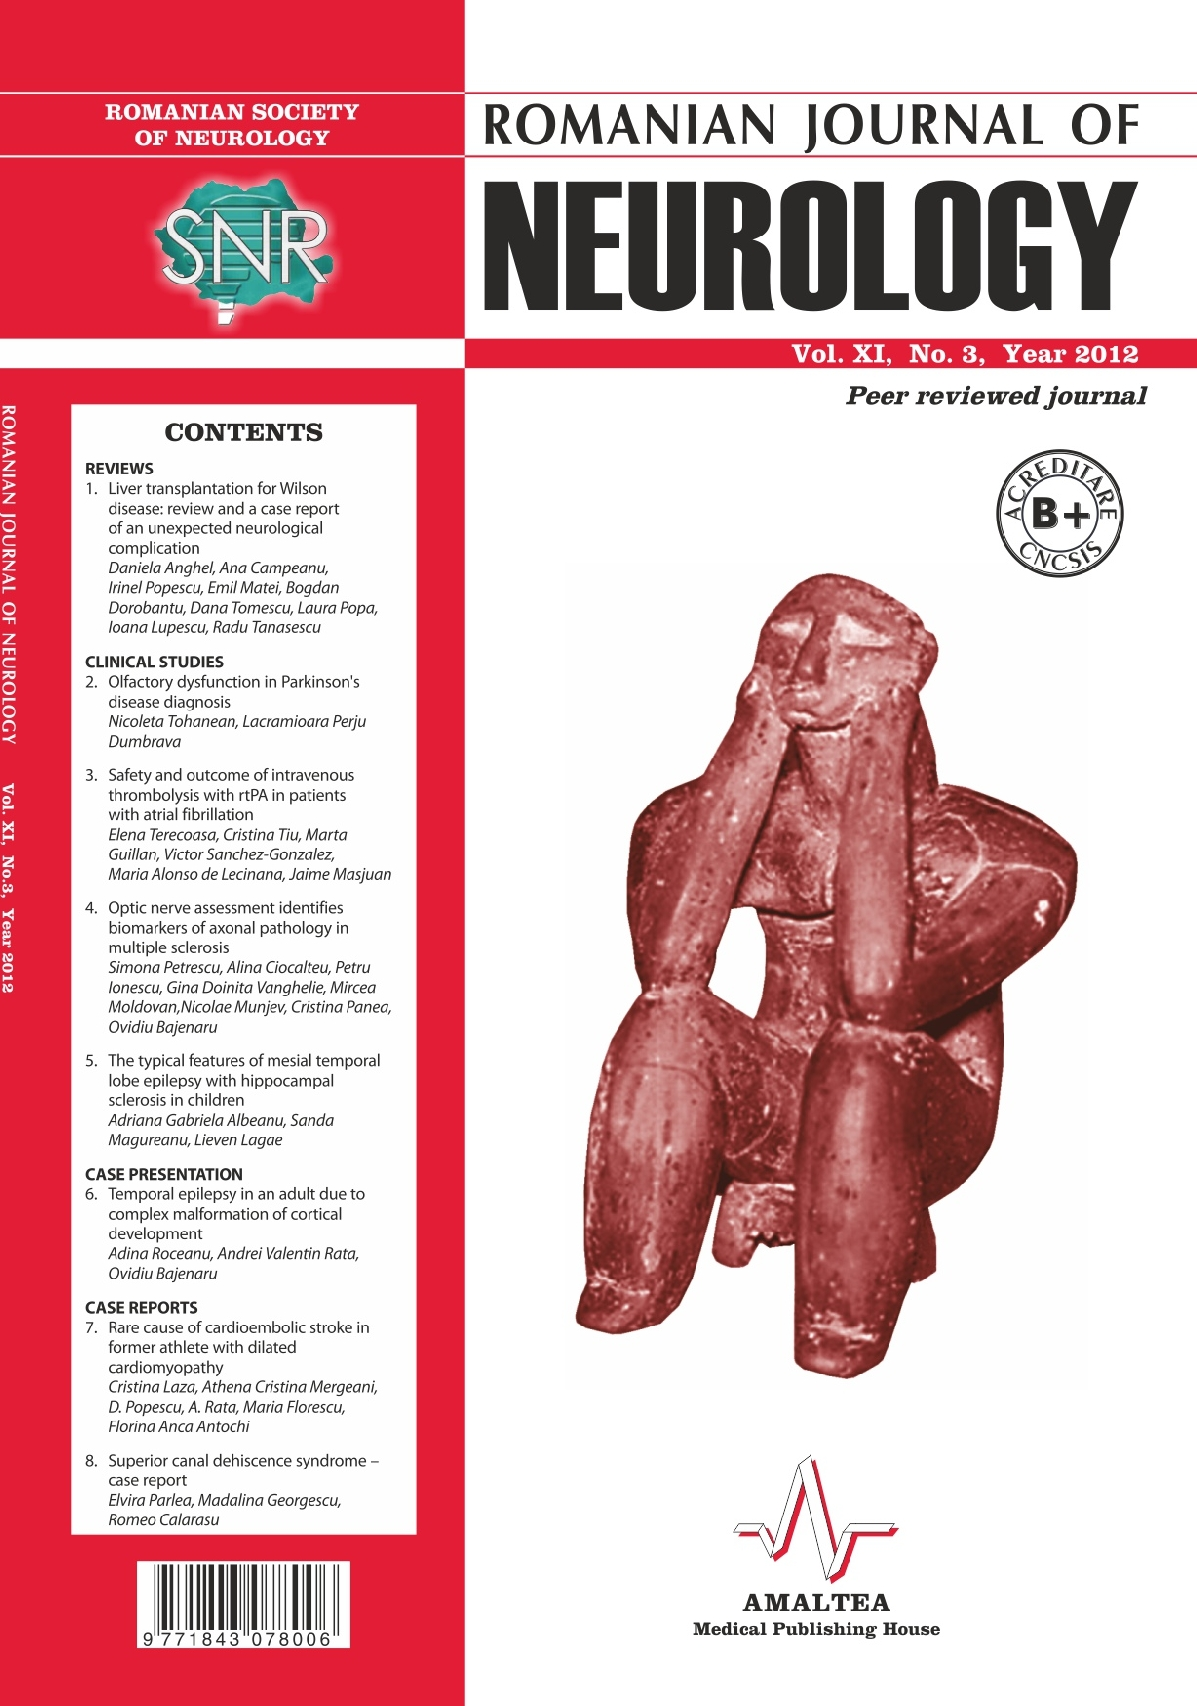 Romanian Journal of Neurology, Volume XI, No. 3, 2012